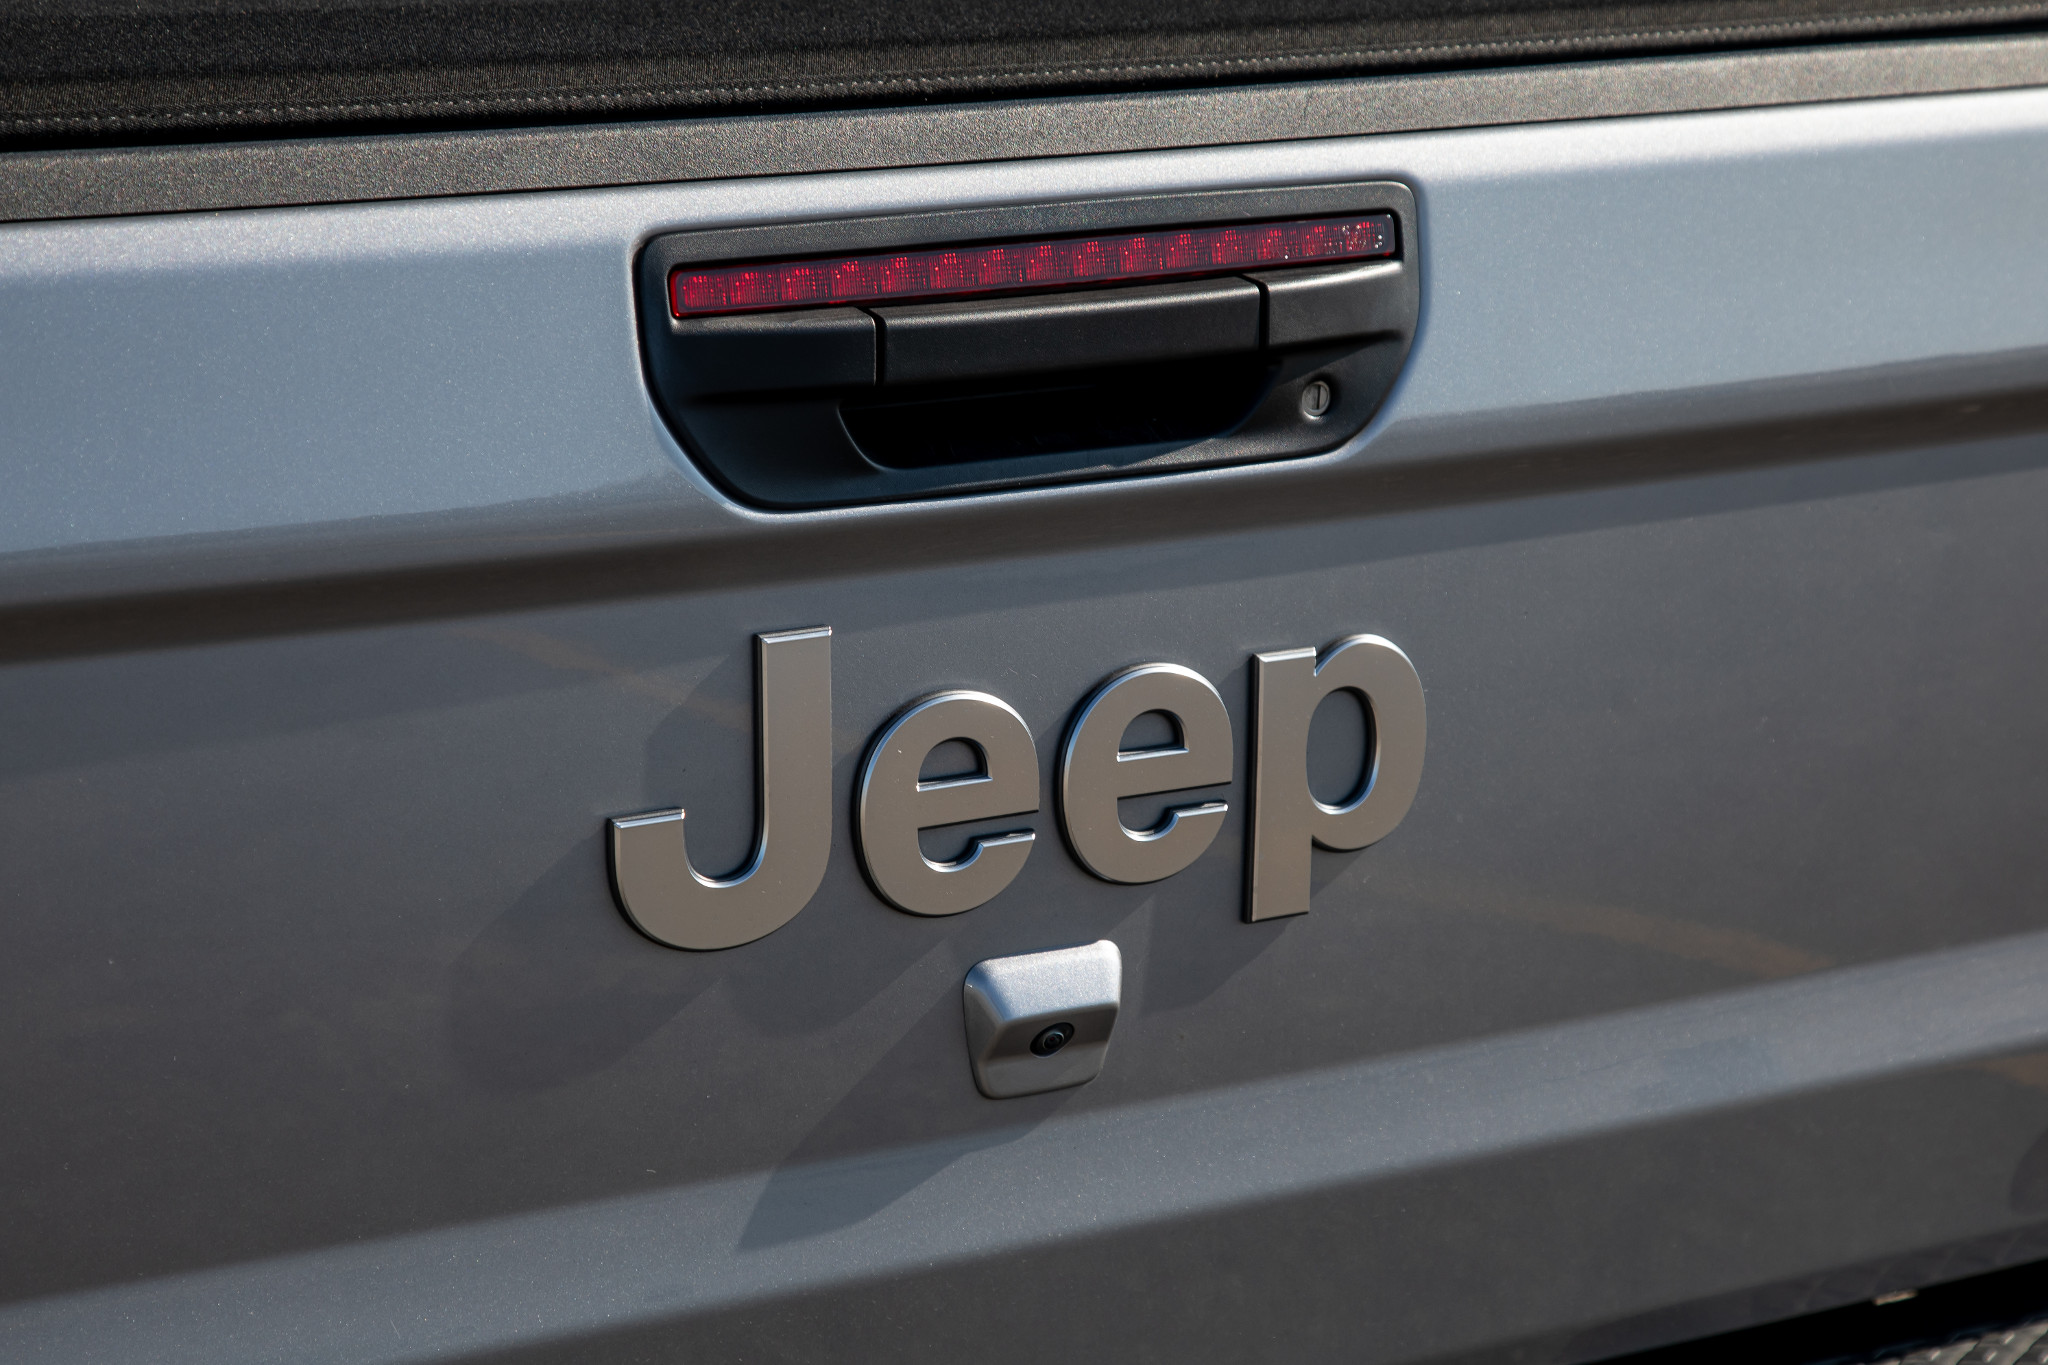 jeep-gladiator-2020-25-badge--exterior--rear--silver.jpg